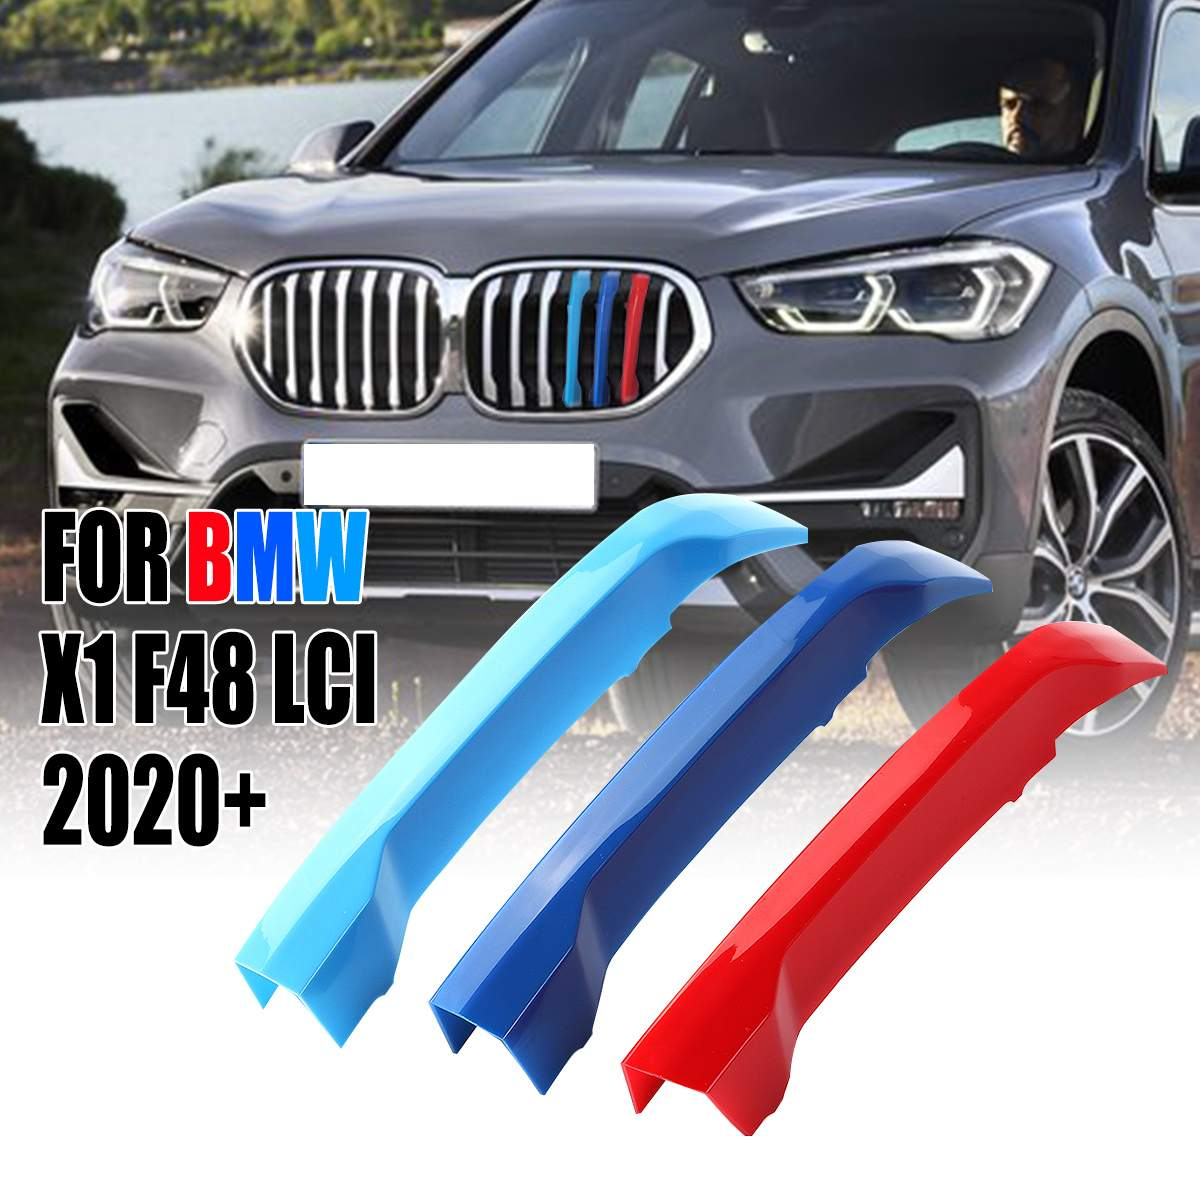 7 Bar Front Kidney Grill Grille Cover Clip Trim 3 Colors Trim Strips Grill Cover Decoration Stickers For BMW X1 F48 LCI 2020